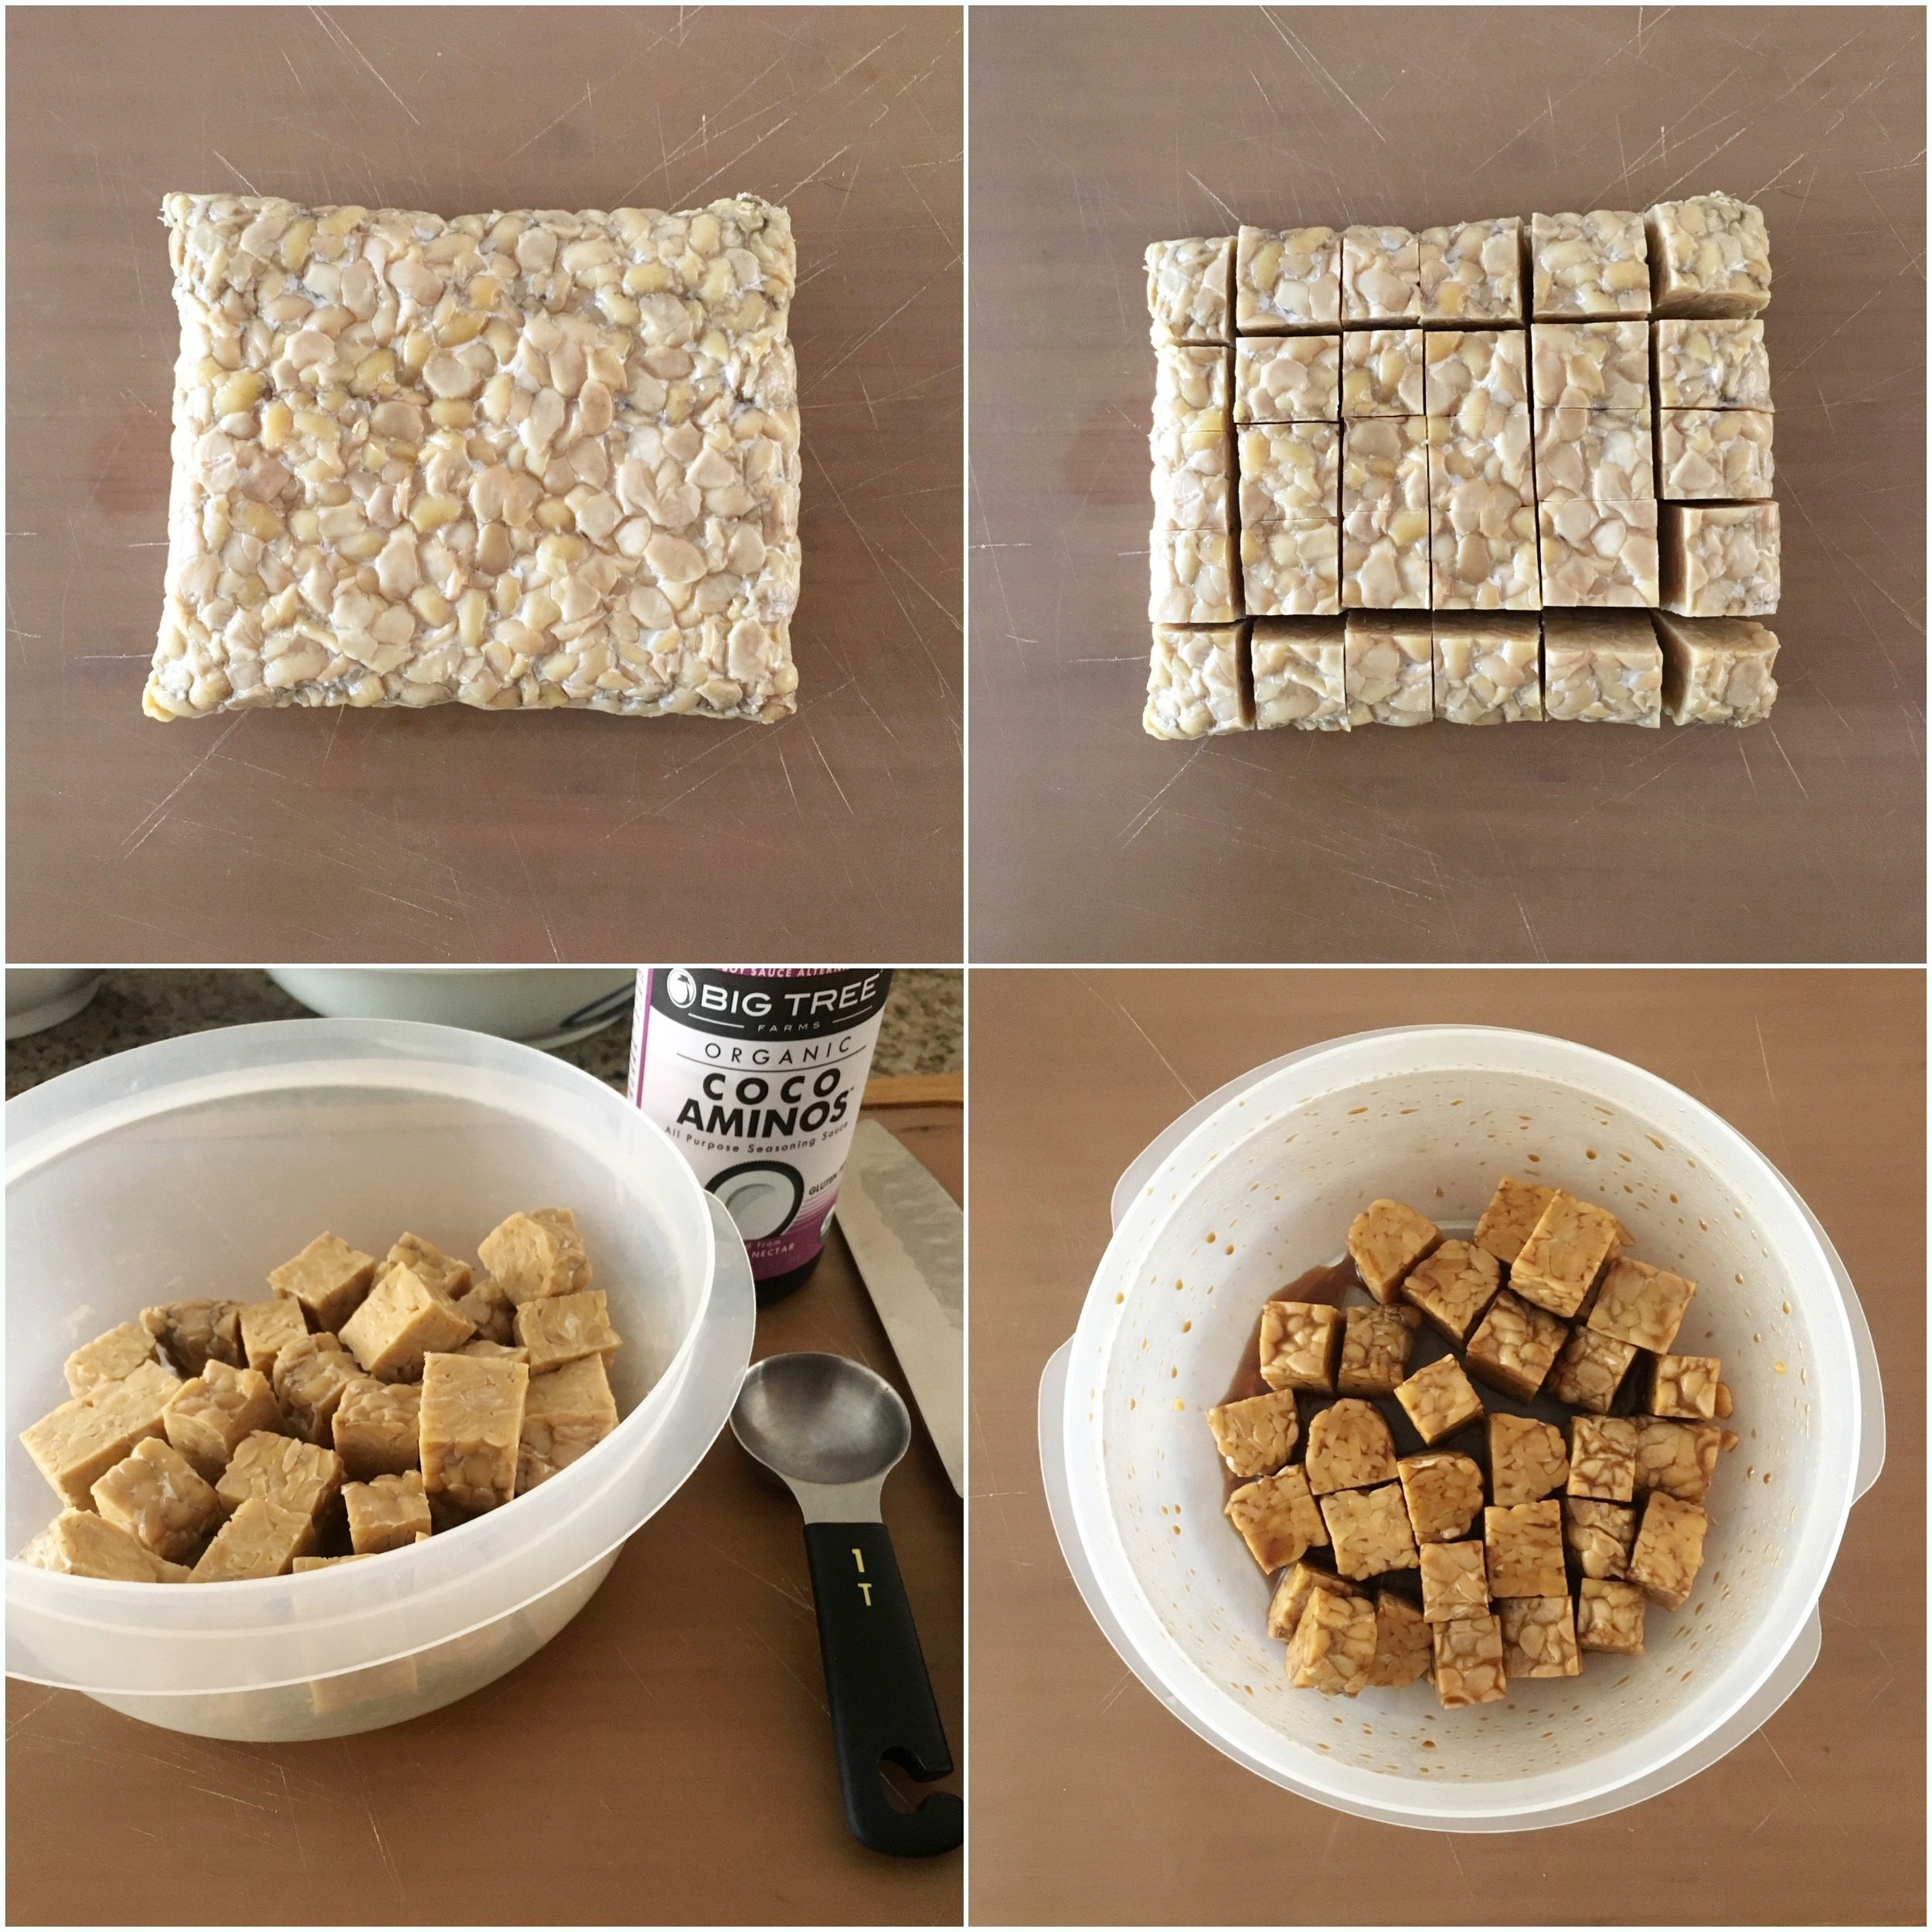 Remove tempeh from the package / cut into 30 cubes / place into a container with a lid / pour 2 tbsp sauce, put on lid, and shake!